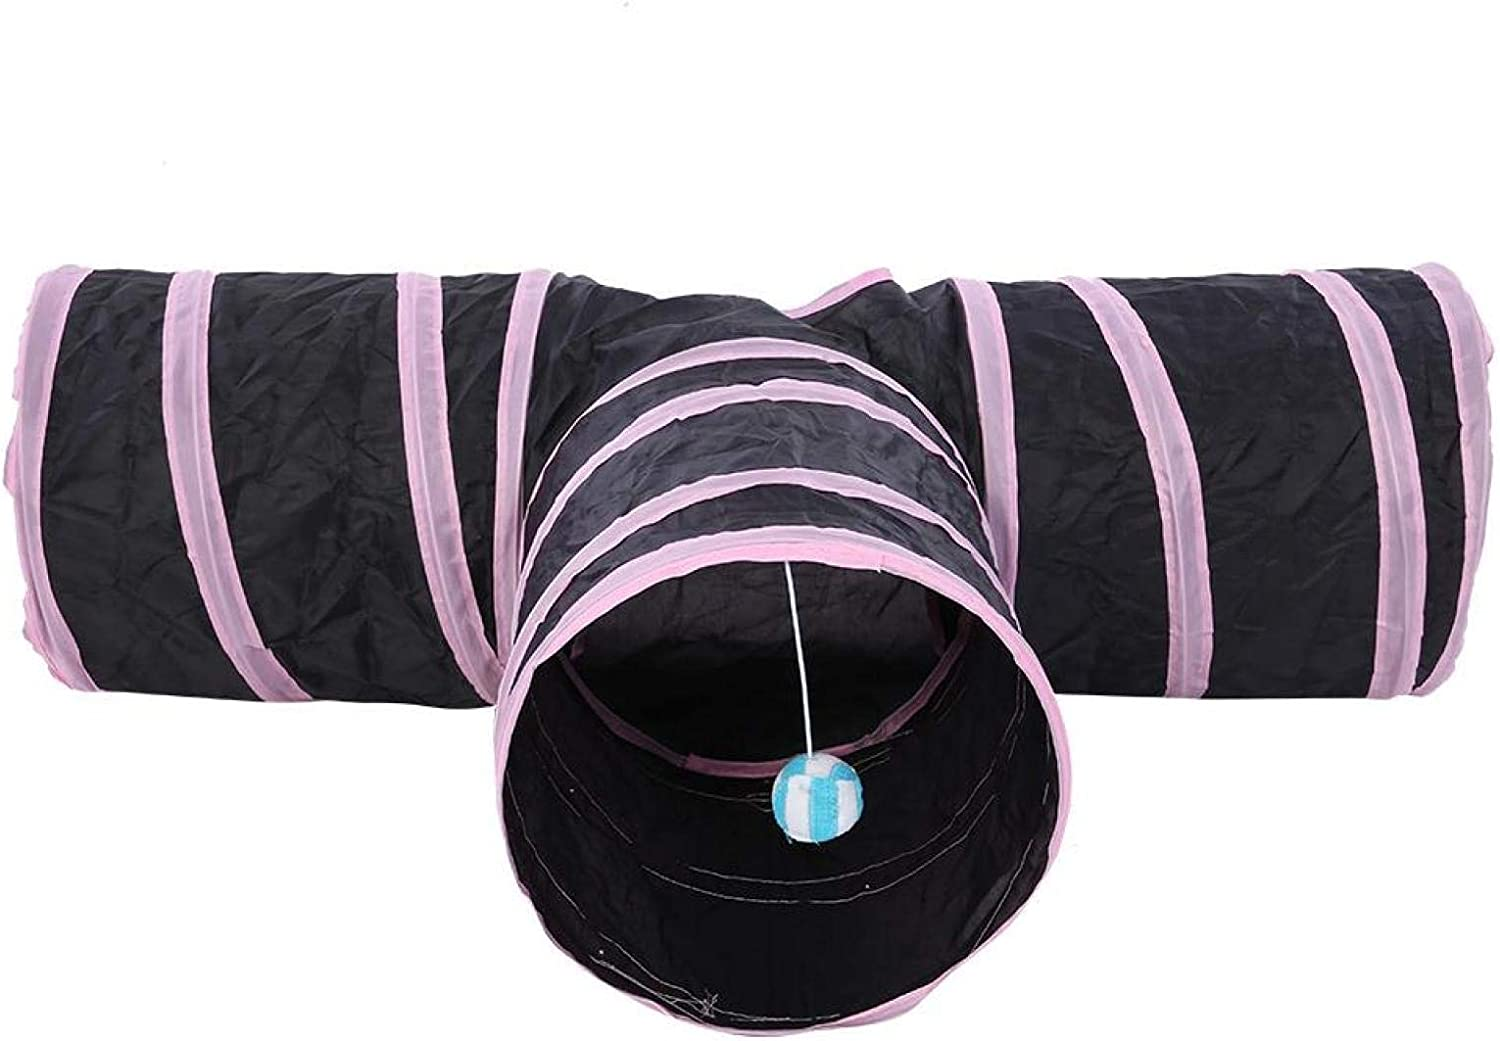 Pet Tunnel Collapsible Polyester Ca San Diego Mall Cat Cloth Super popular specialty store